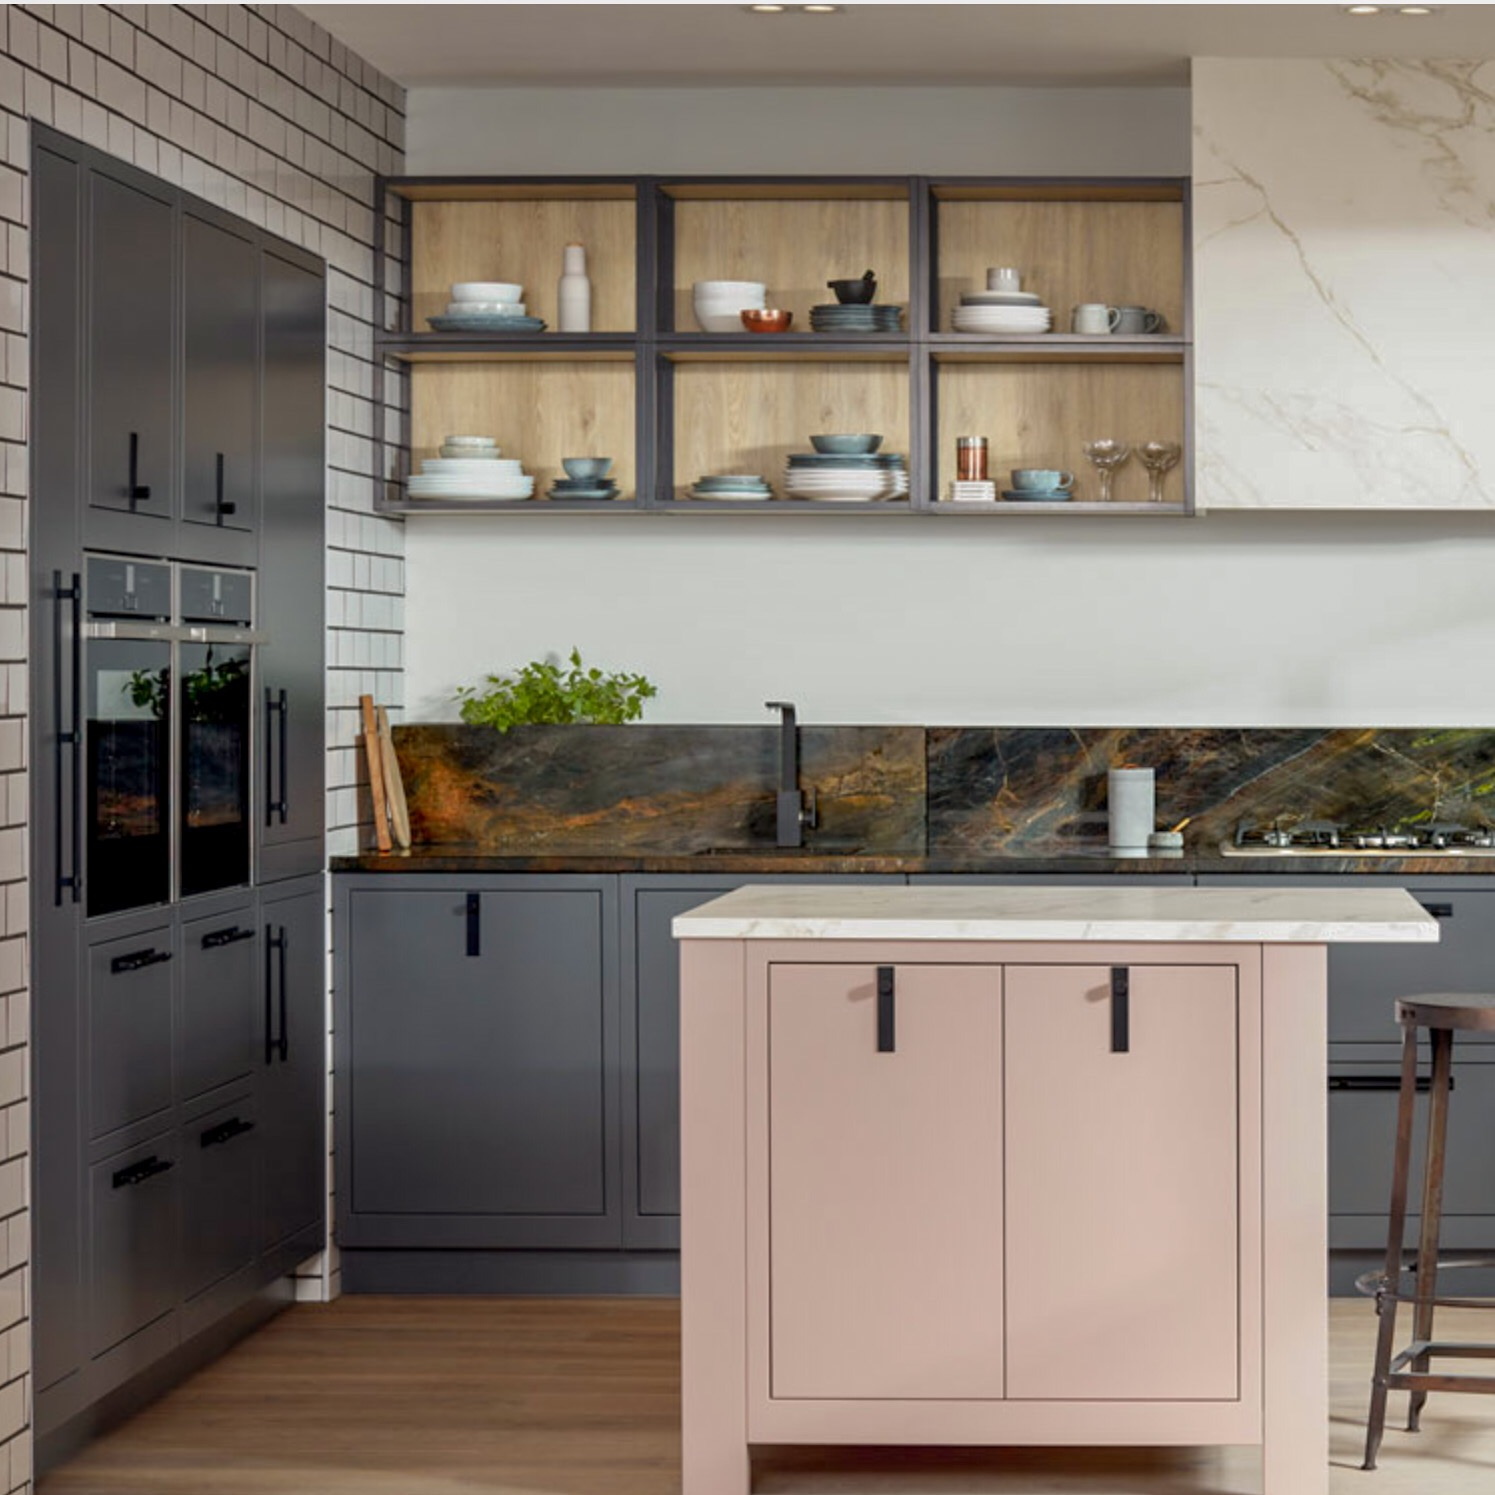 Campbell Kitchen: Collaboration With Colourhill Kitchens & Bedrooms